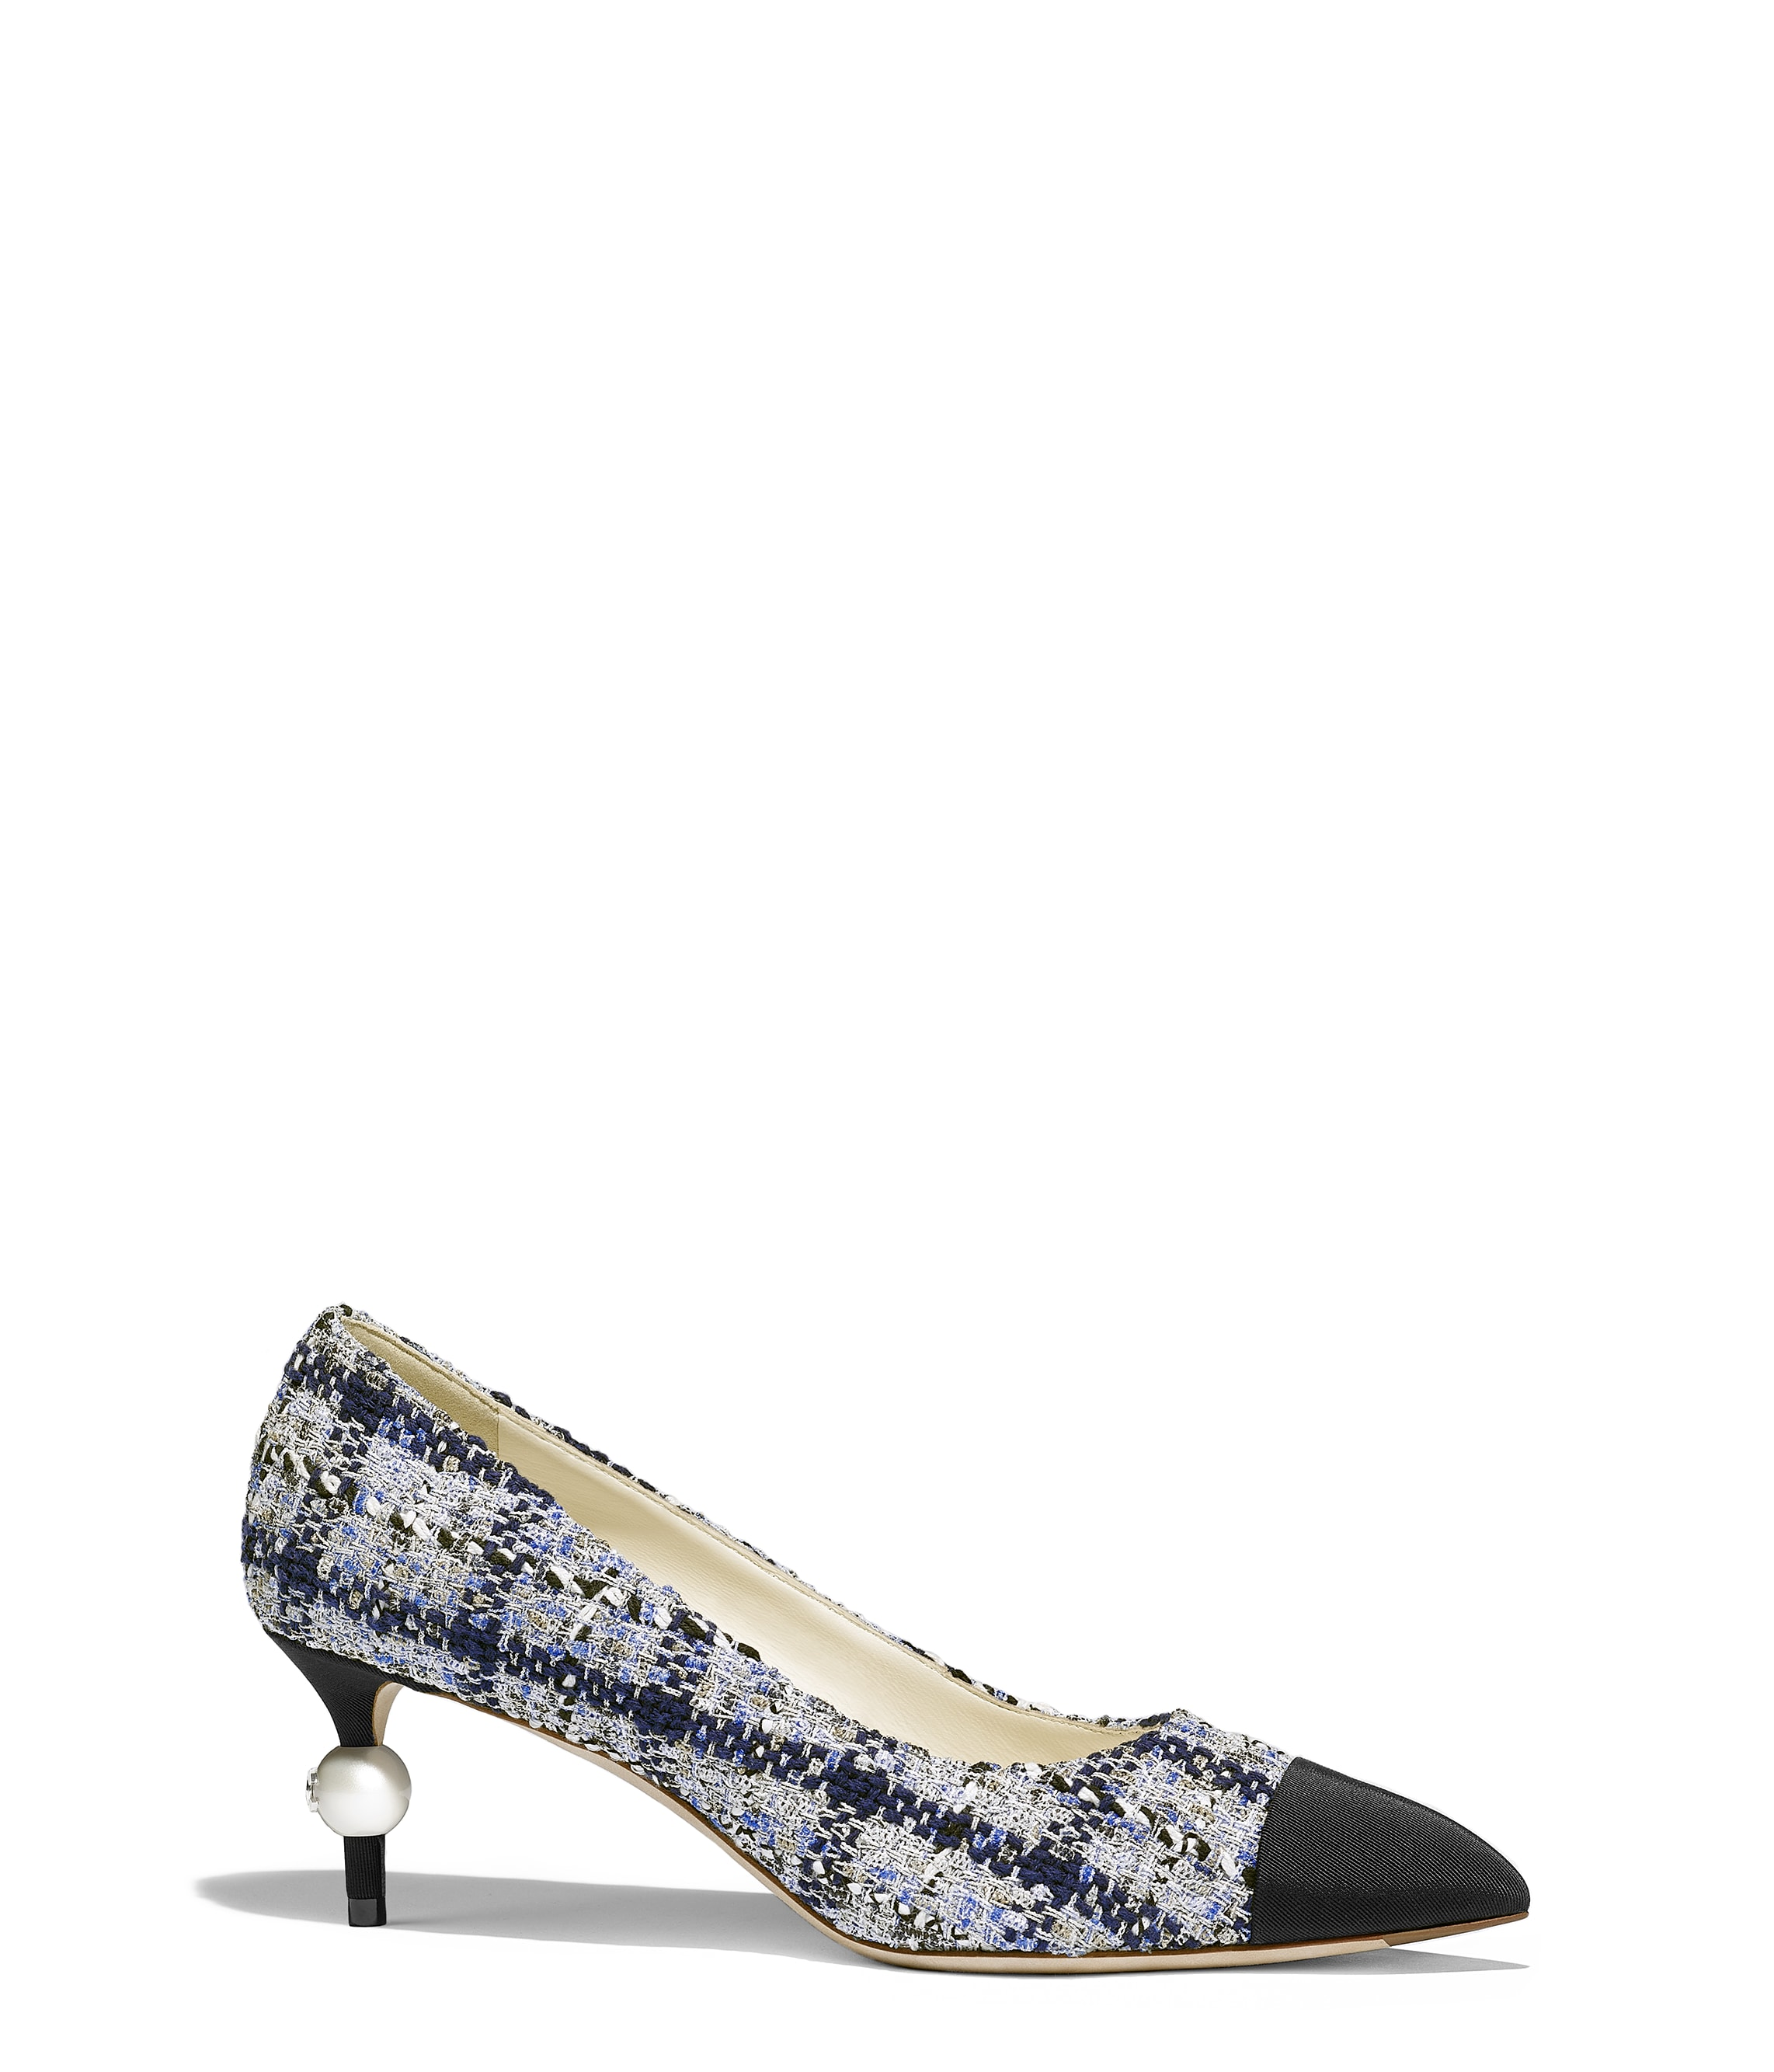 Escarpins Slingbacks Chaussures Chanel